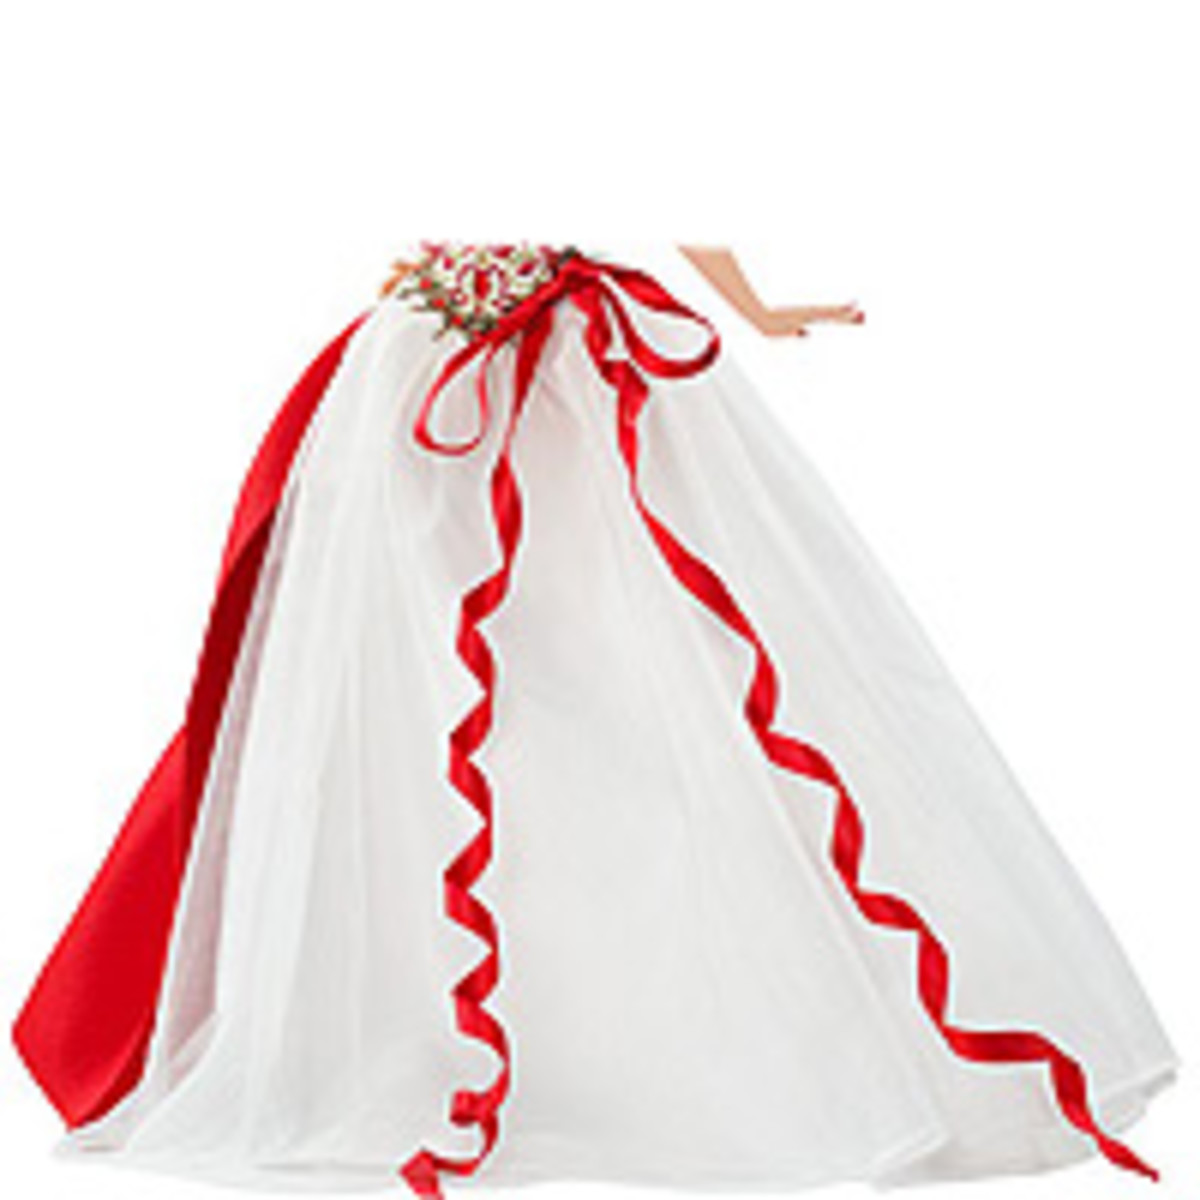 The red wrap and ribbon bow stand out against the snowy white skirt.